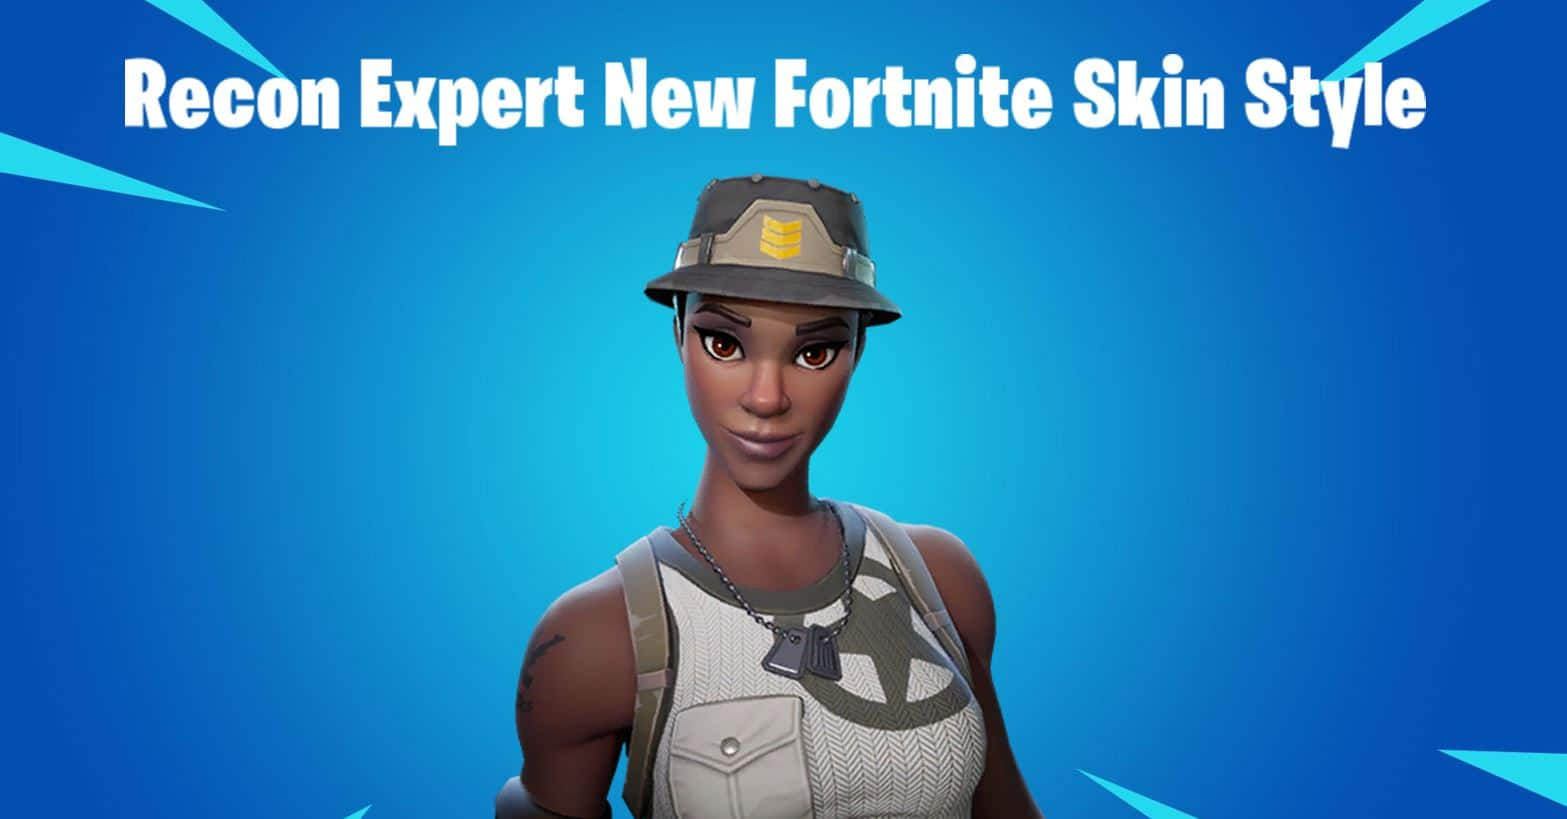 Recon Expert No Hat Fortnite Skin Style